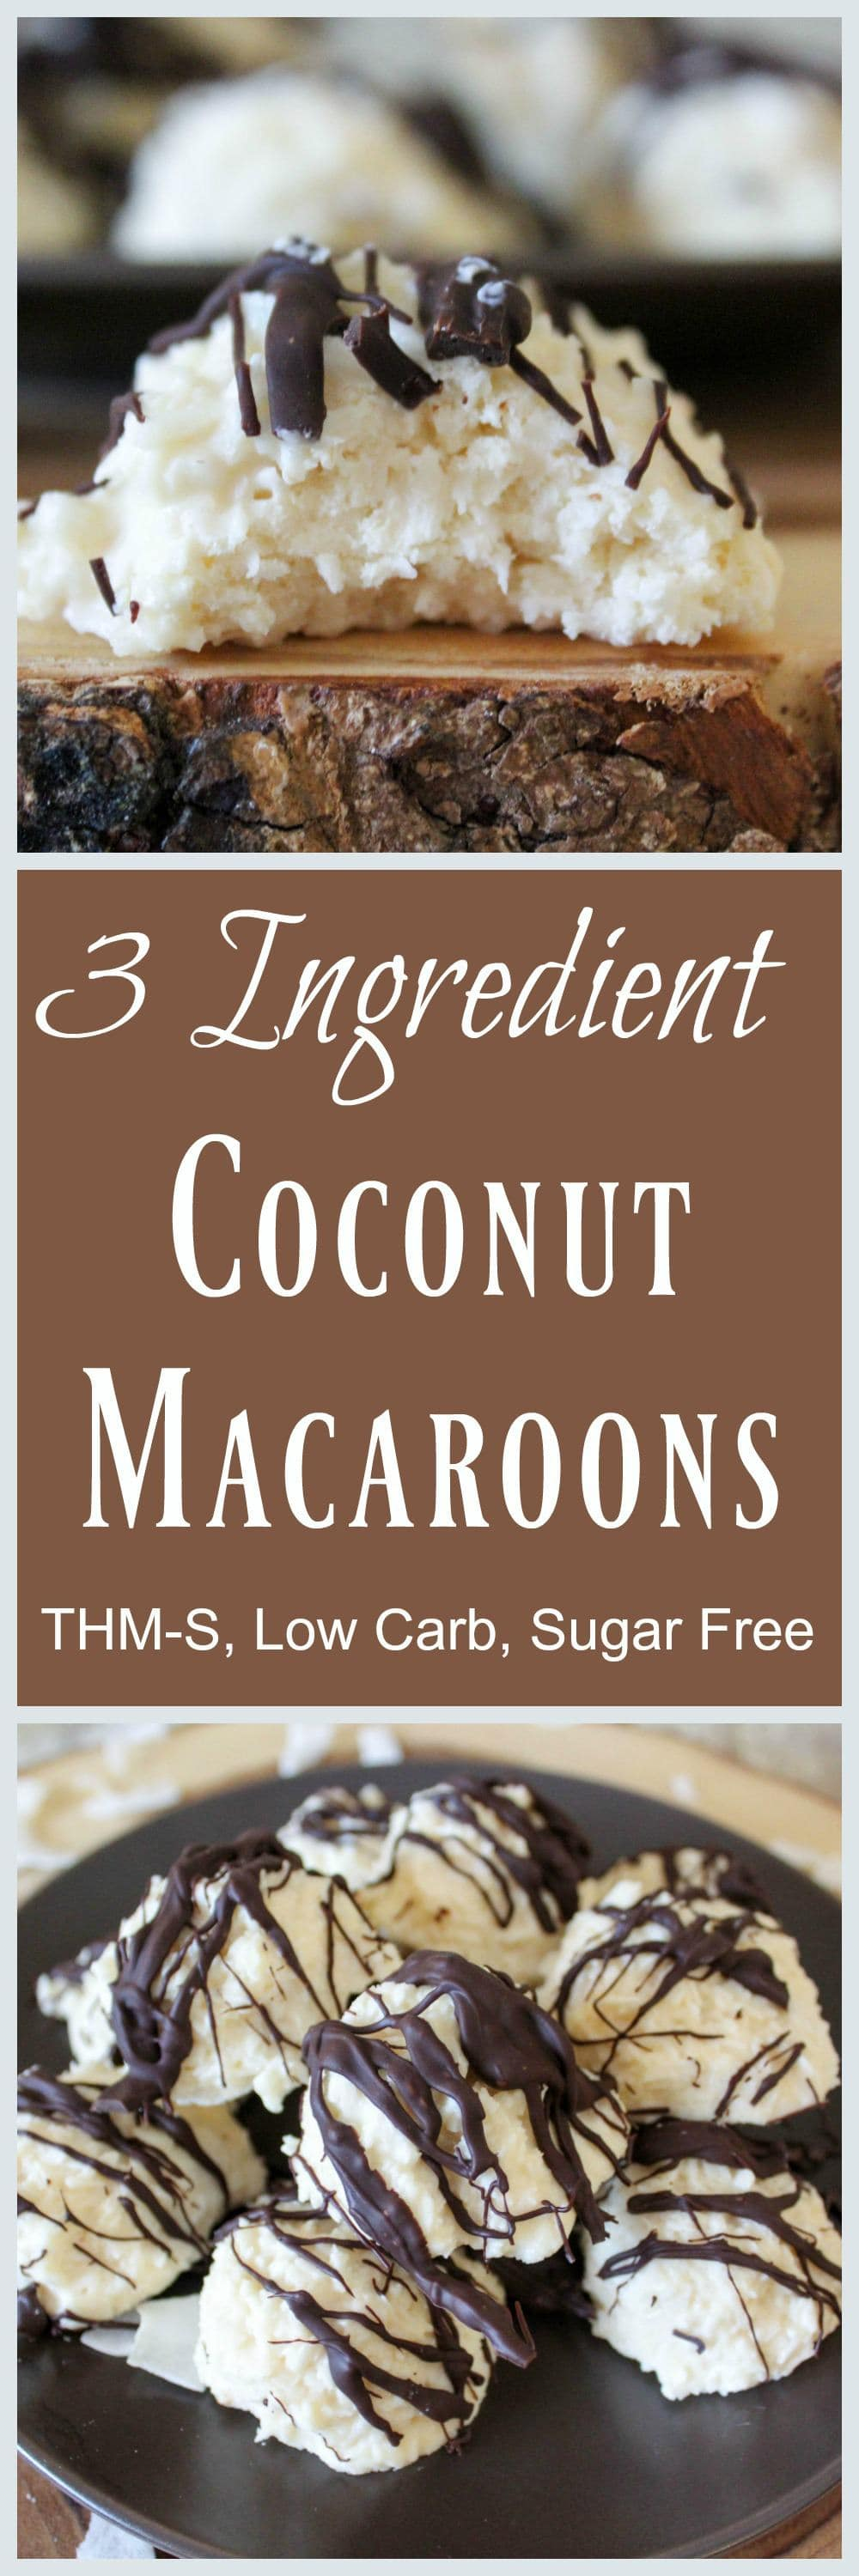 3-Ingredient Coconut Macaroons (THM-S, Low Carb, Sugar Free)